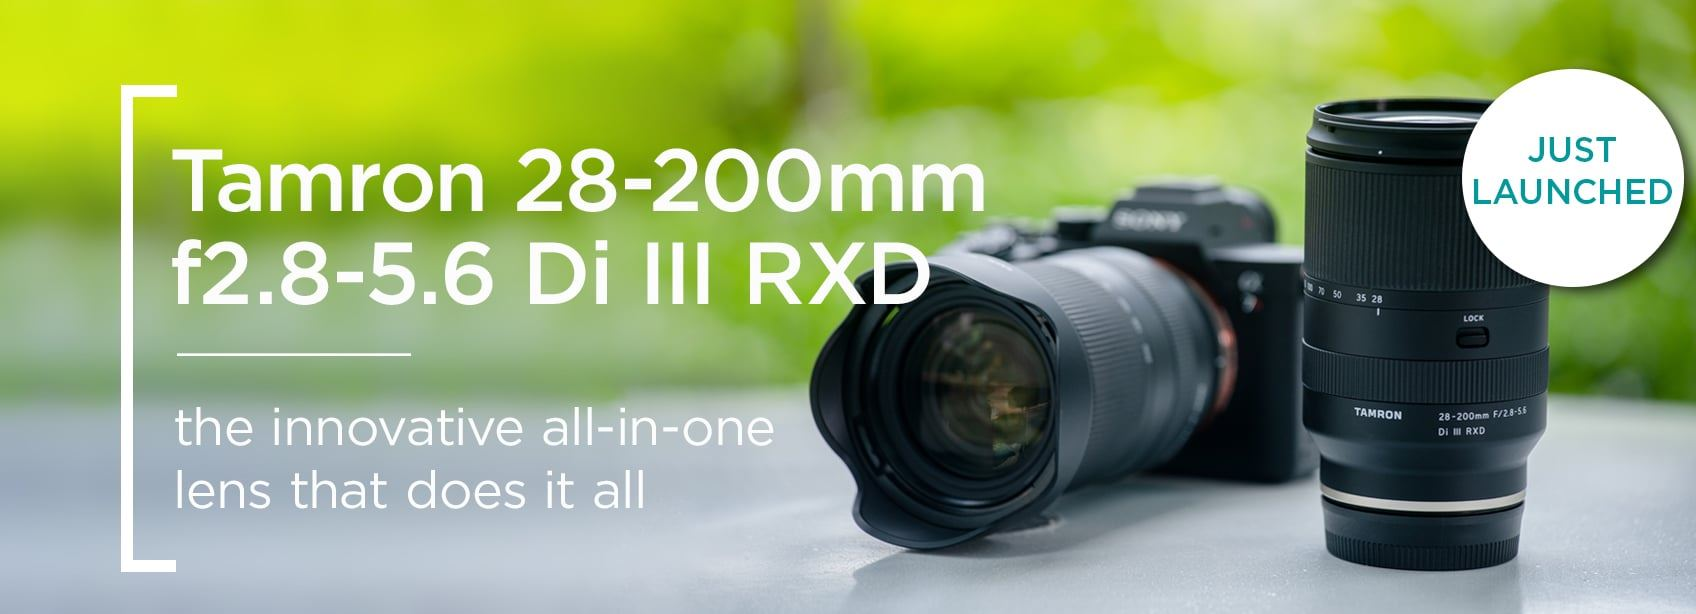 Tamron 28-200mm f20.8-5.6 Di III RXD - the innovative all-in-one lens that does it all